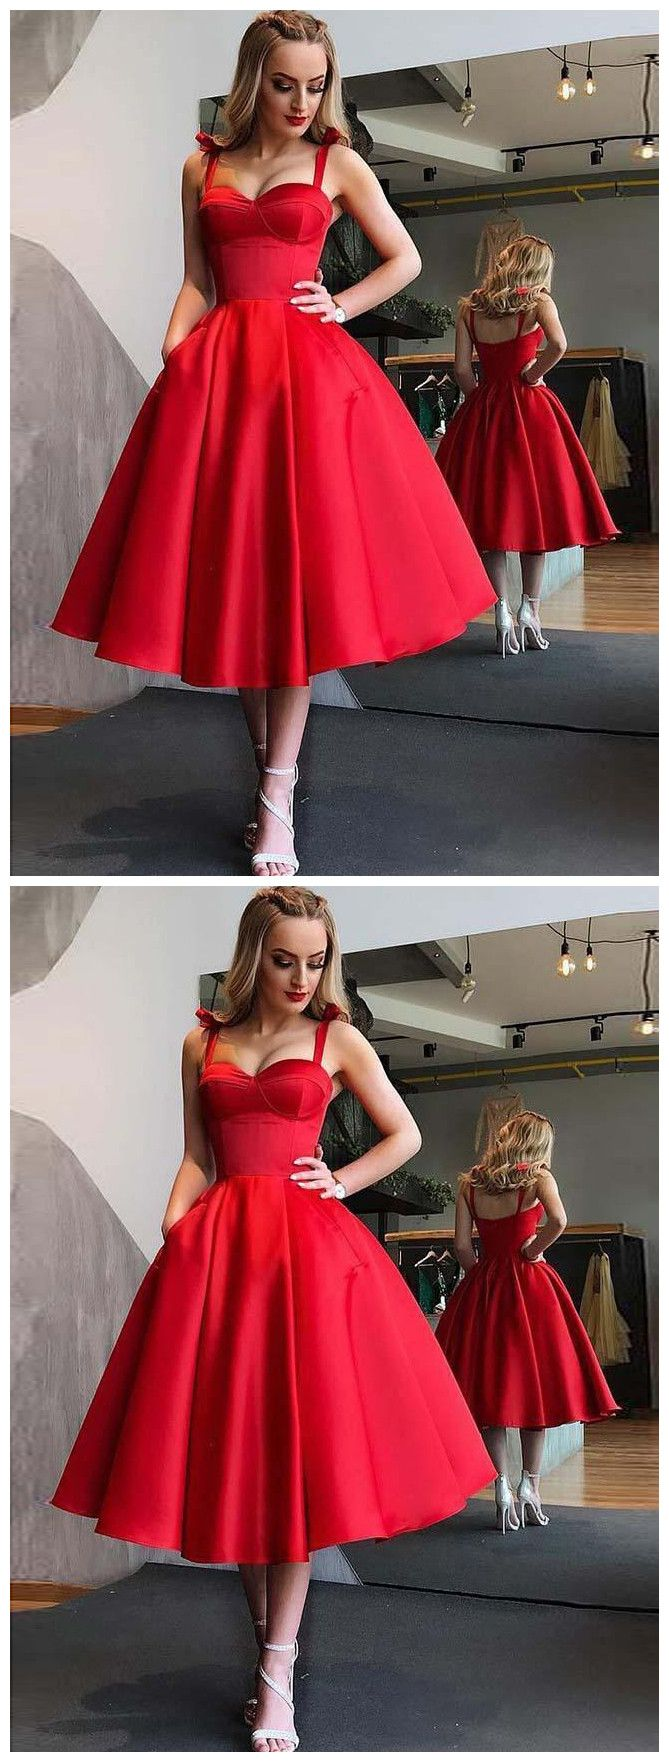 Aline straps midcalf red satin tea length homecoming dress with